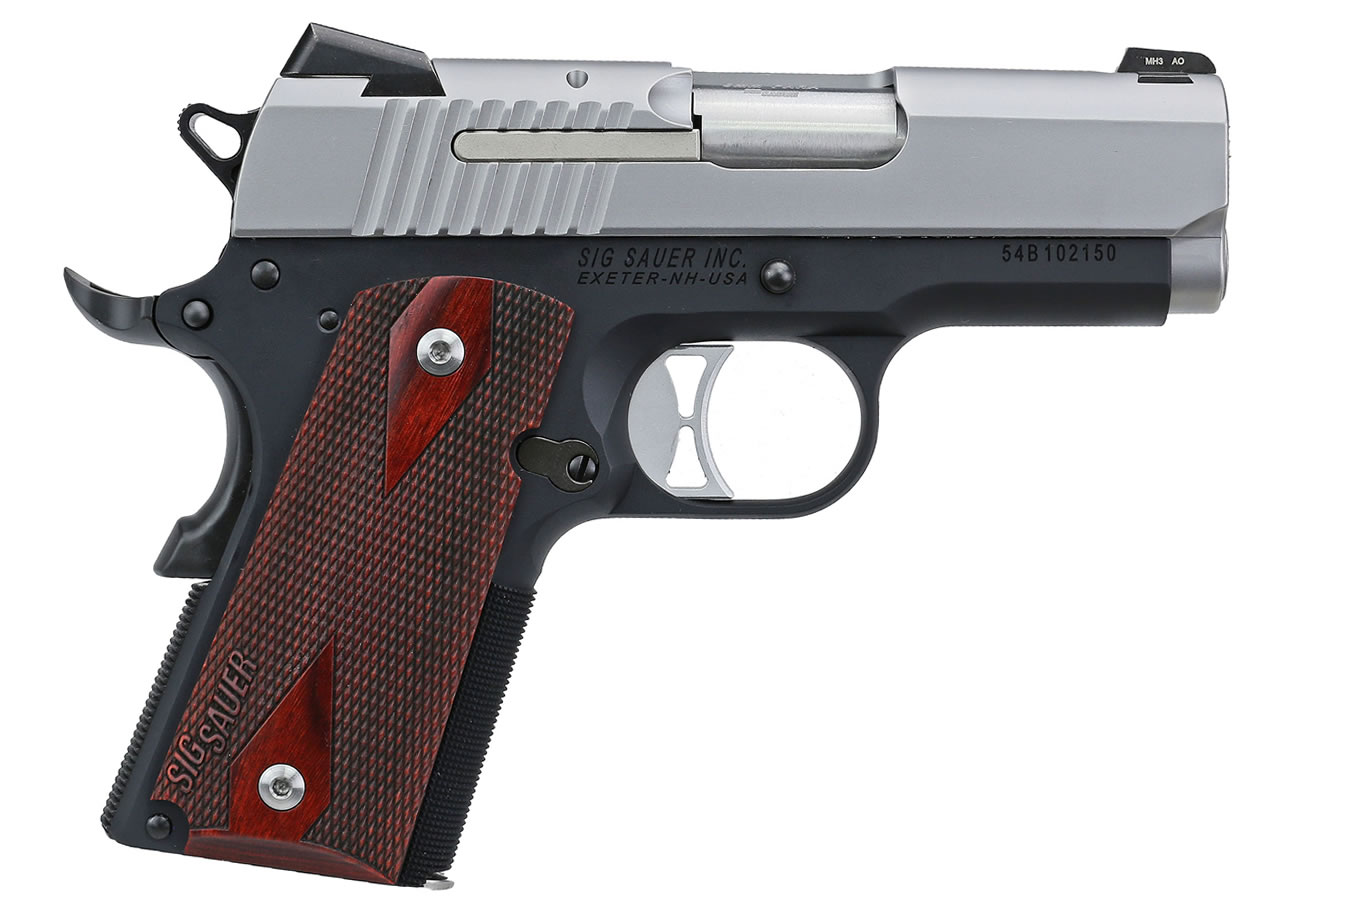 1911 Ultra Compact Two-Tone 9mm with Night Sights